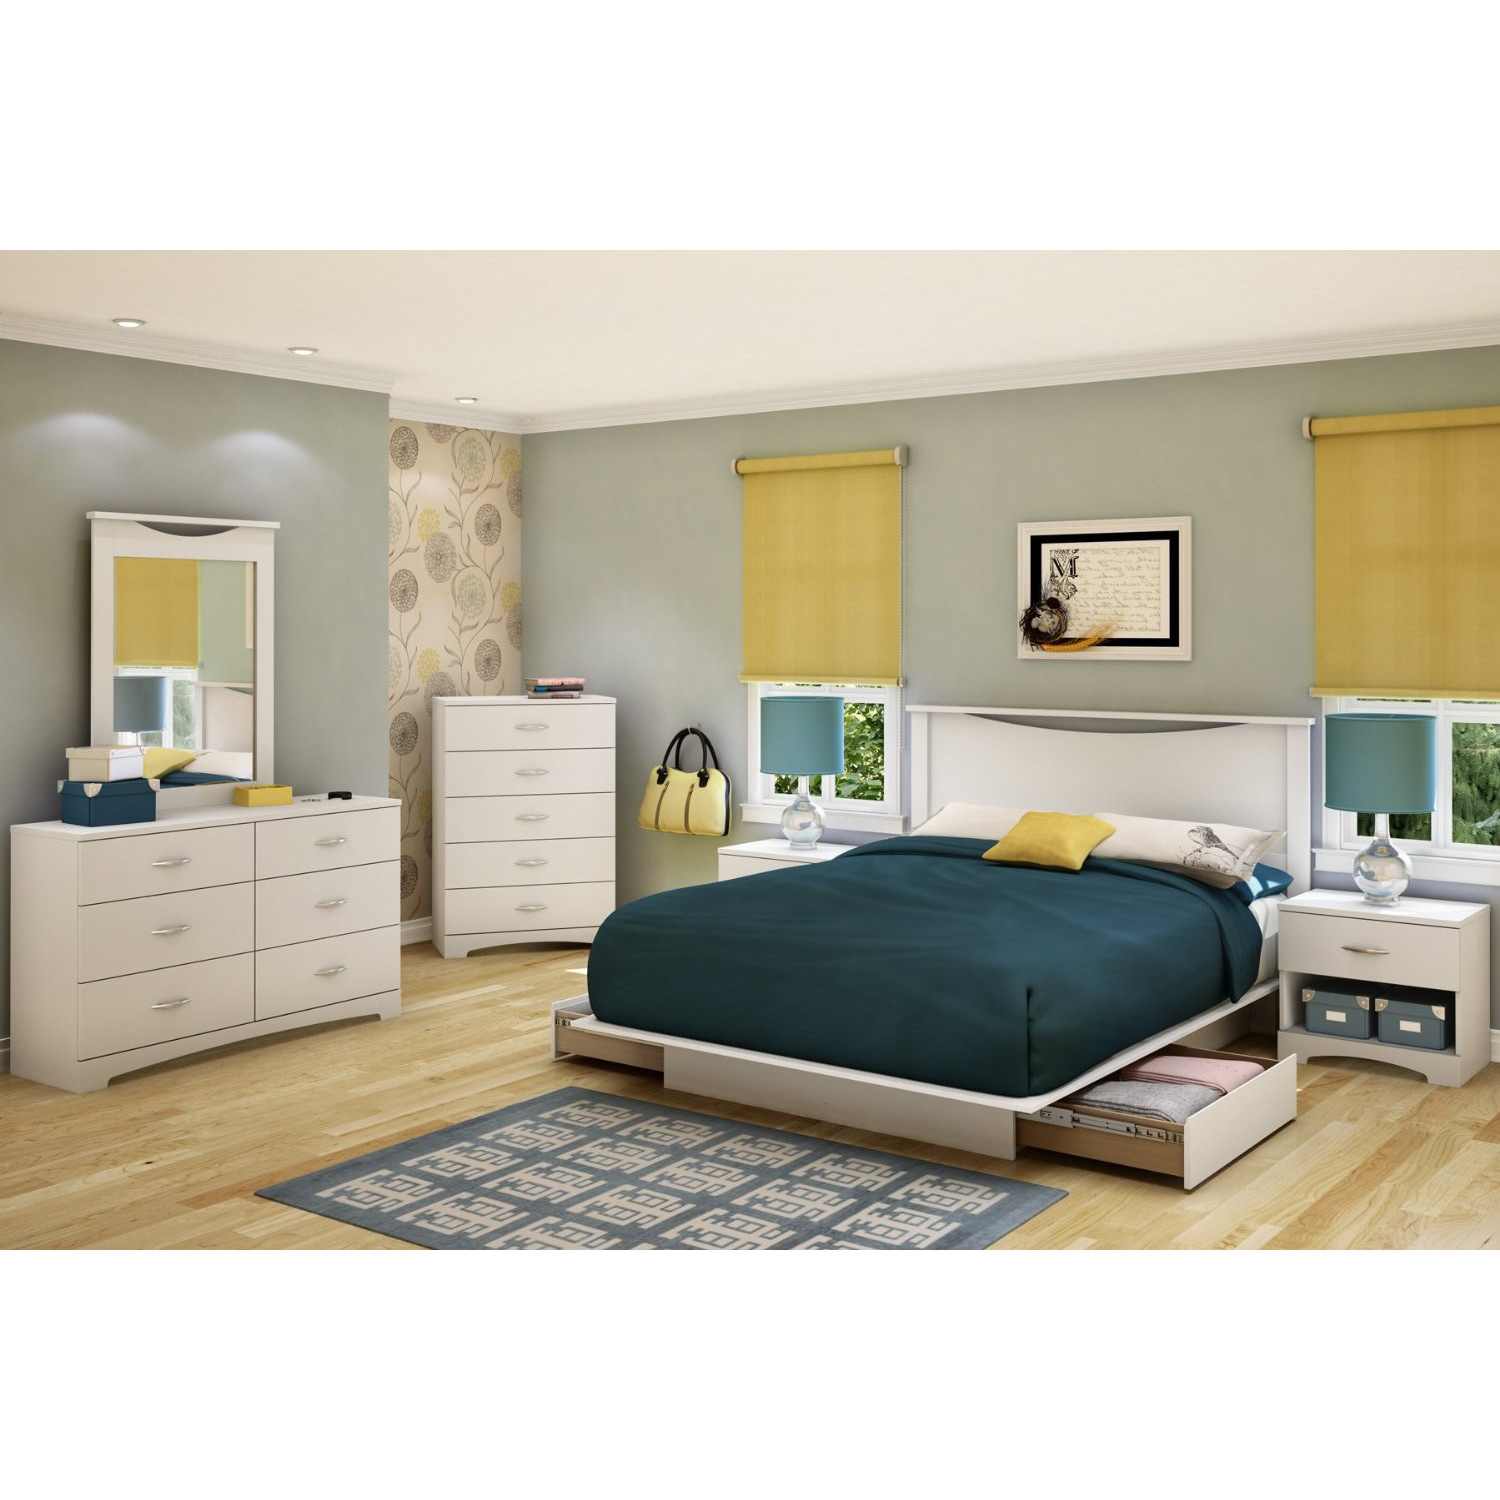 retail price 39900 - Full White Bed Frame